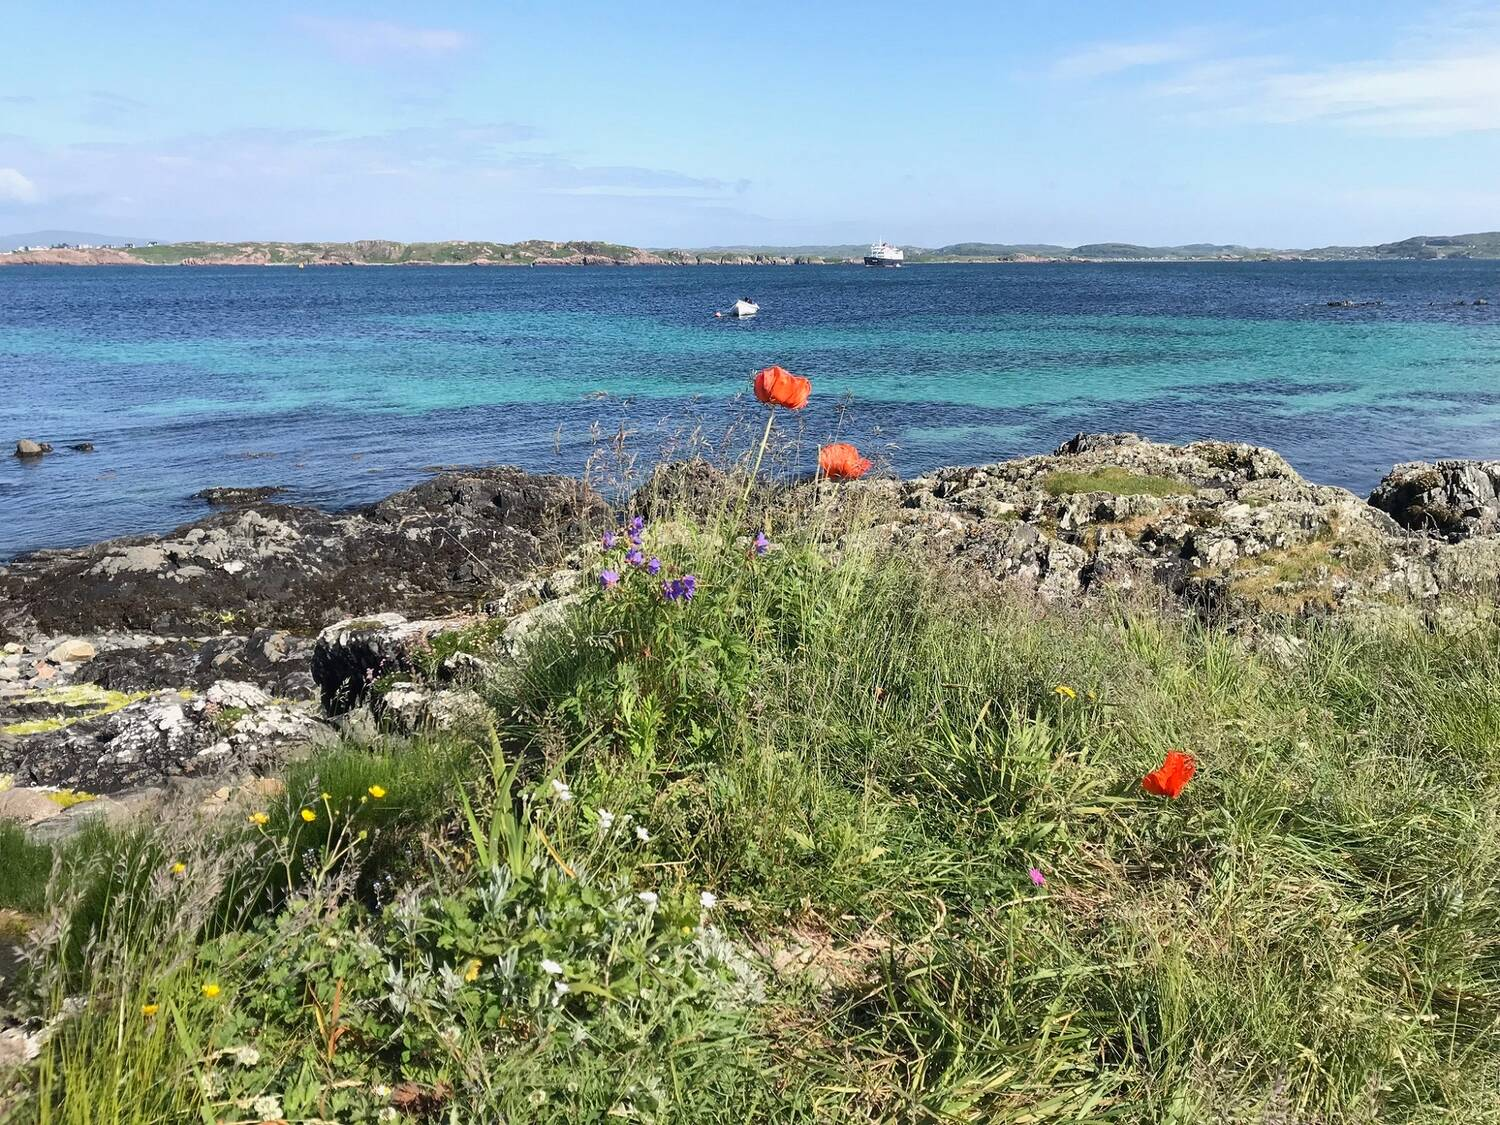 Poppies and other wildflowers grow on a rocky coastline, with a bright blue sea in the background. A ferry can be seen in the distance.